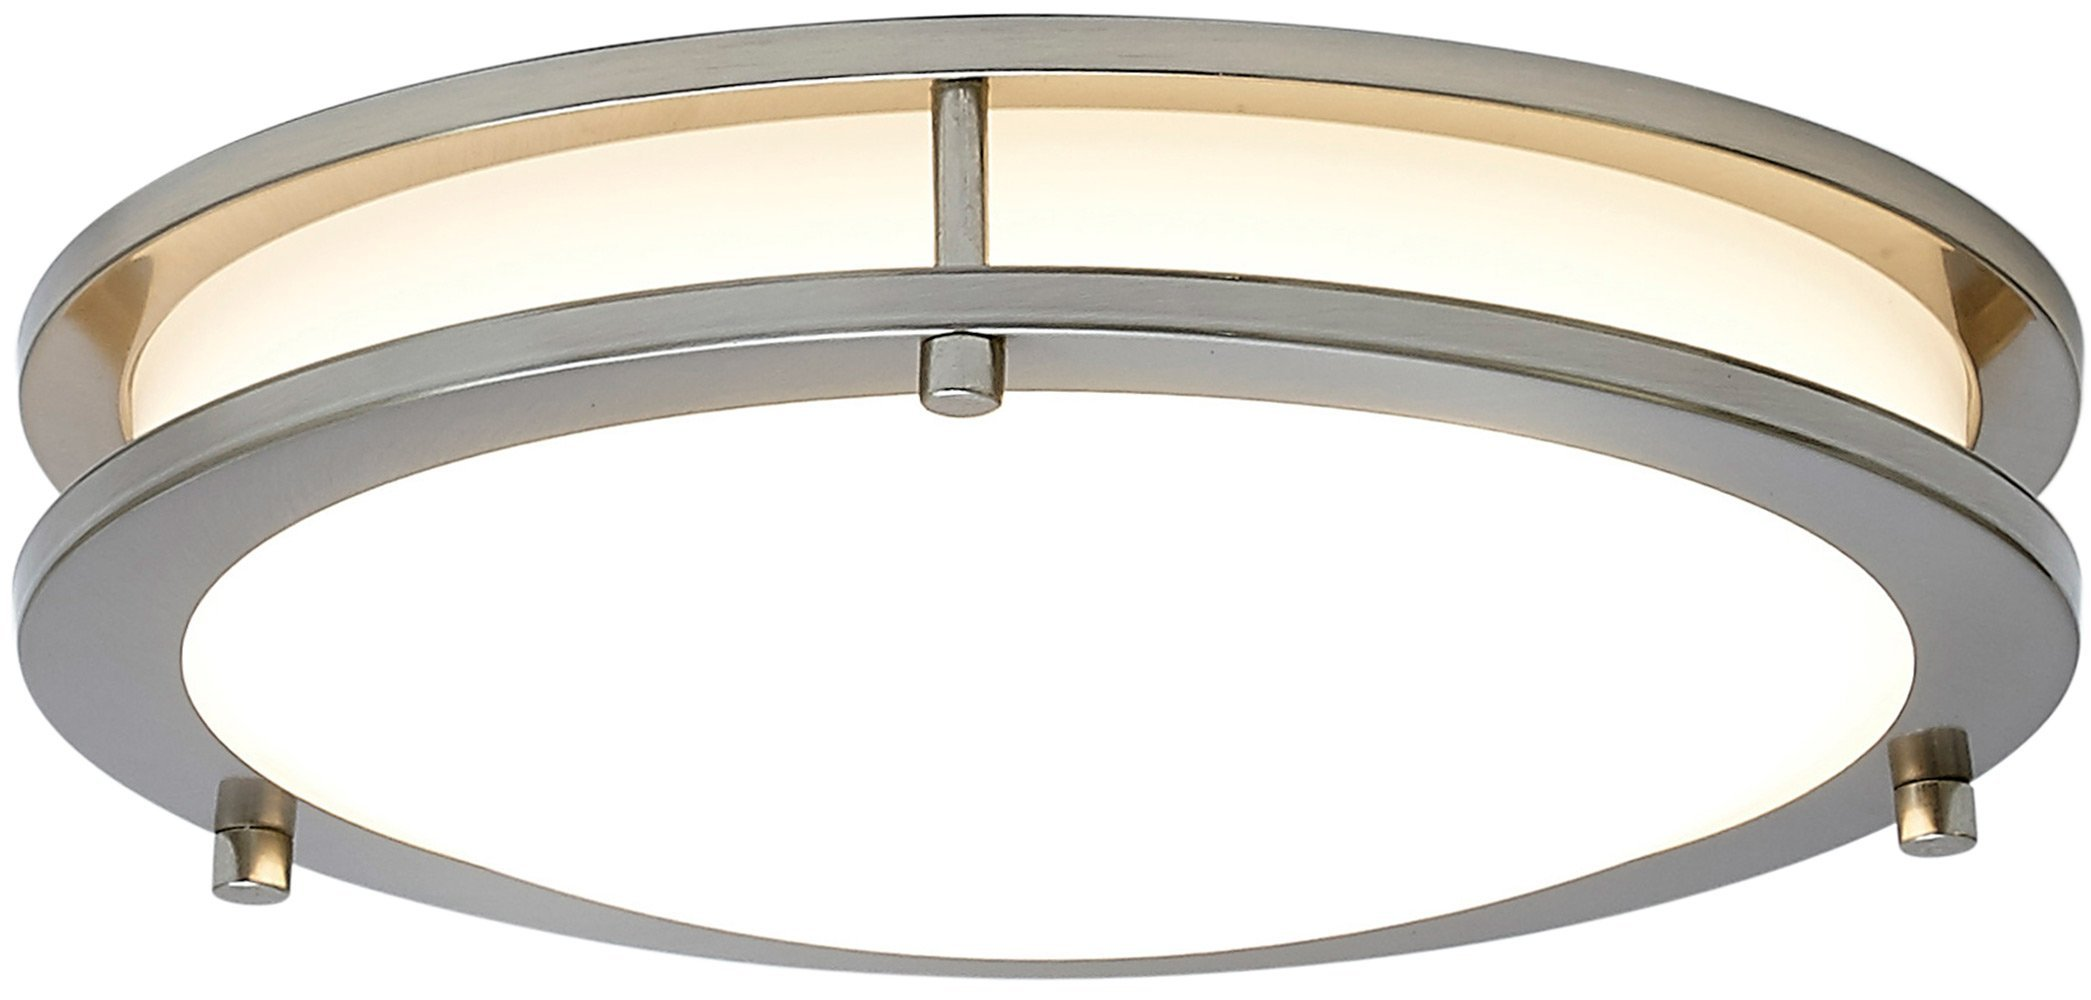 NEW Modern Round LED Ceiling Light | Contemporary Sleek Circular Design | Frosted Fixture with Brushed Aluminum | 3000K Warm White Dimmable LED 12''